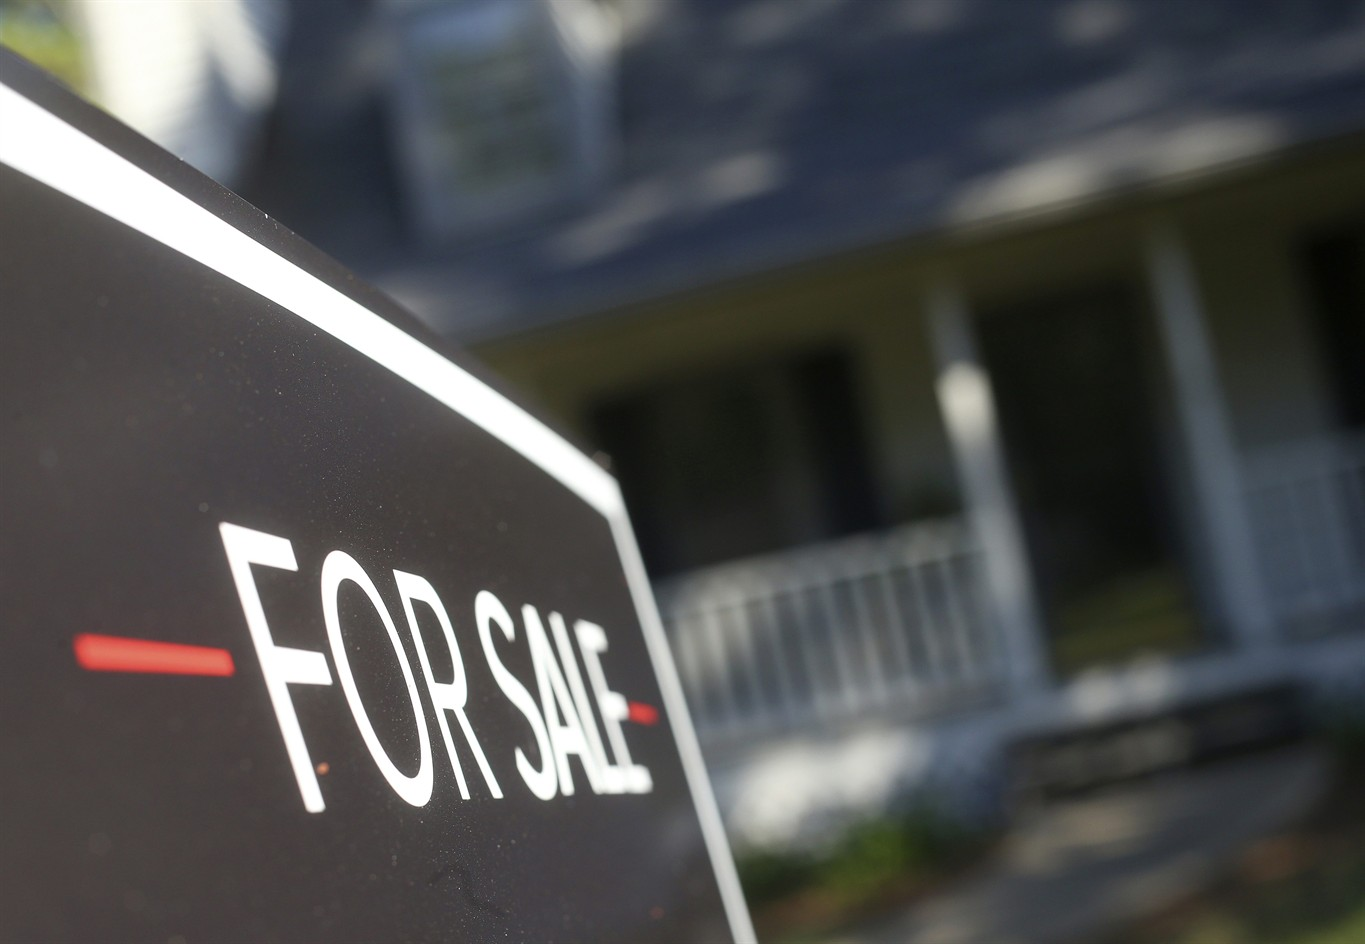 Mortgage rates hit 7-year high amid slowing housing market